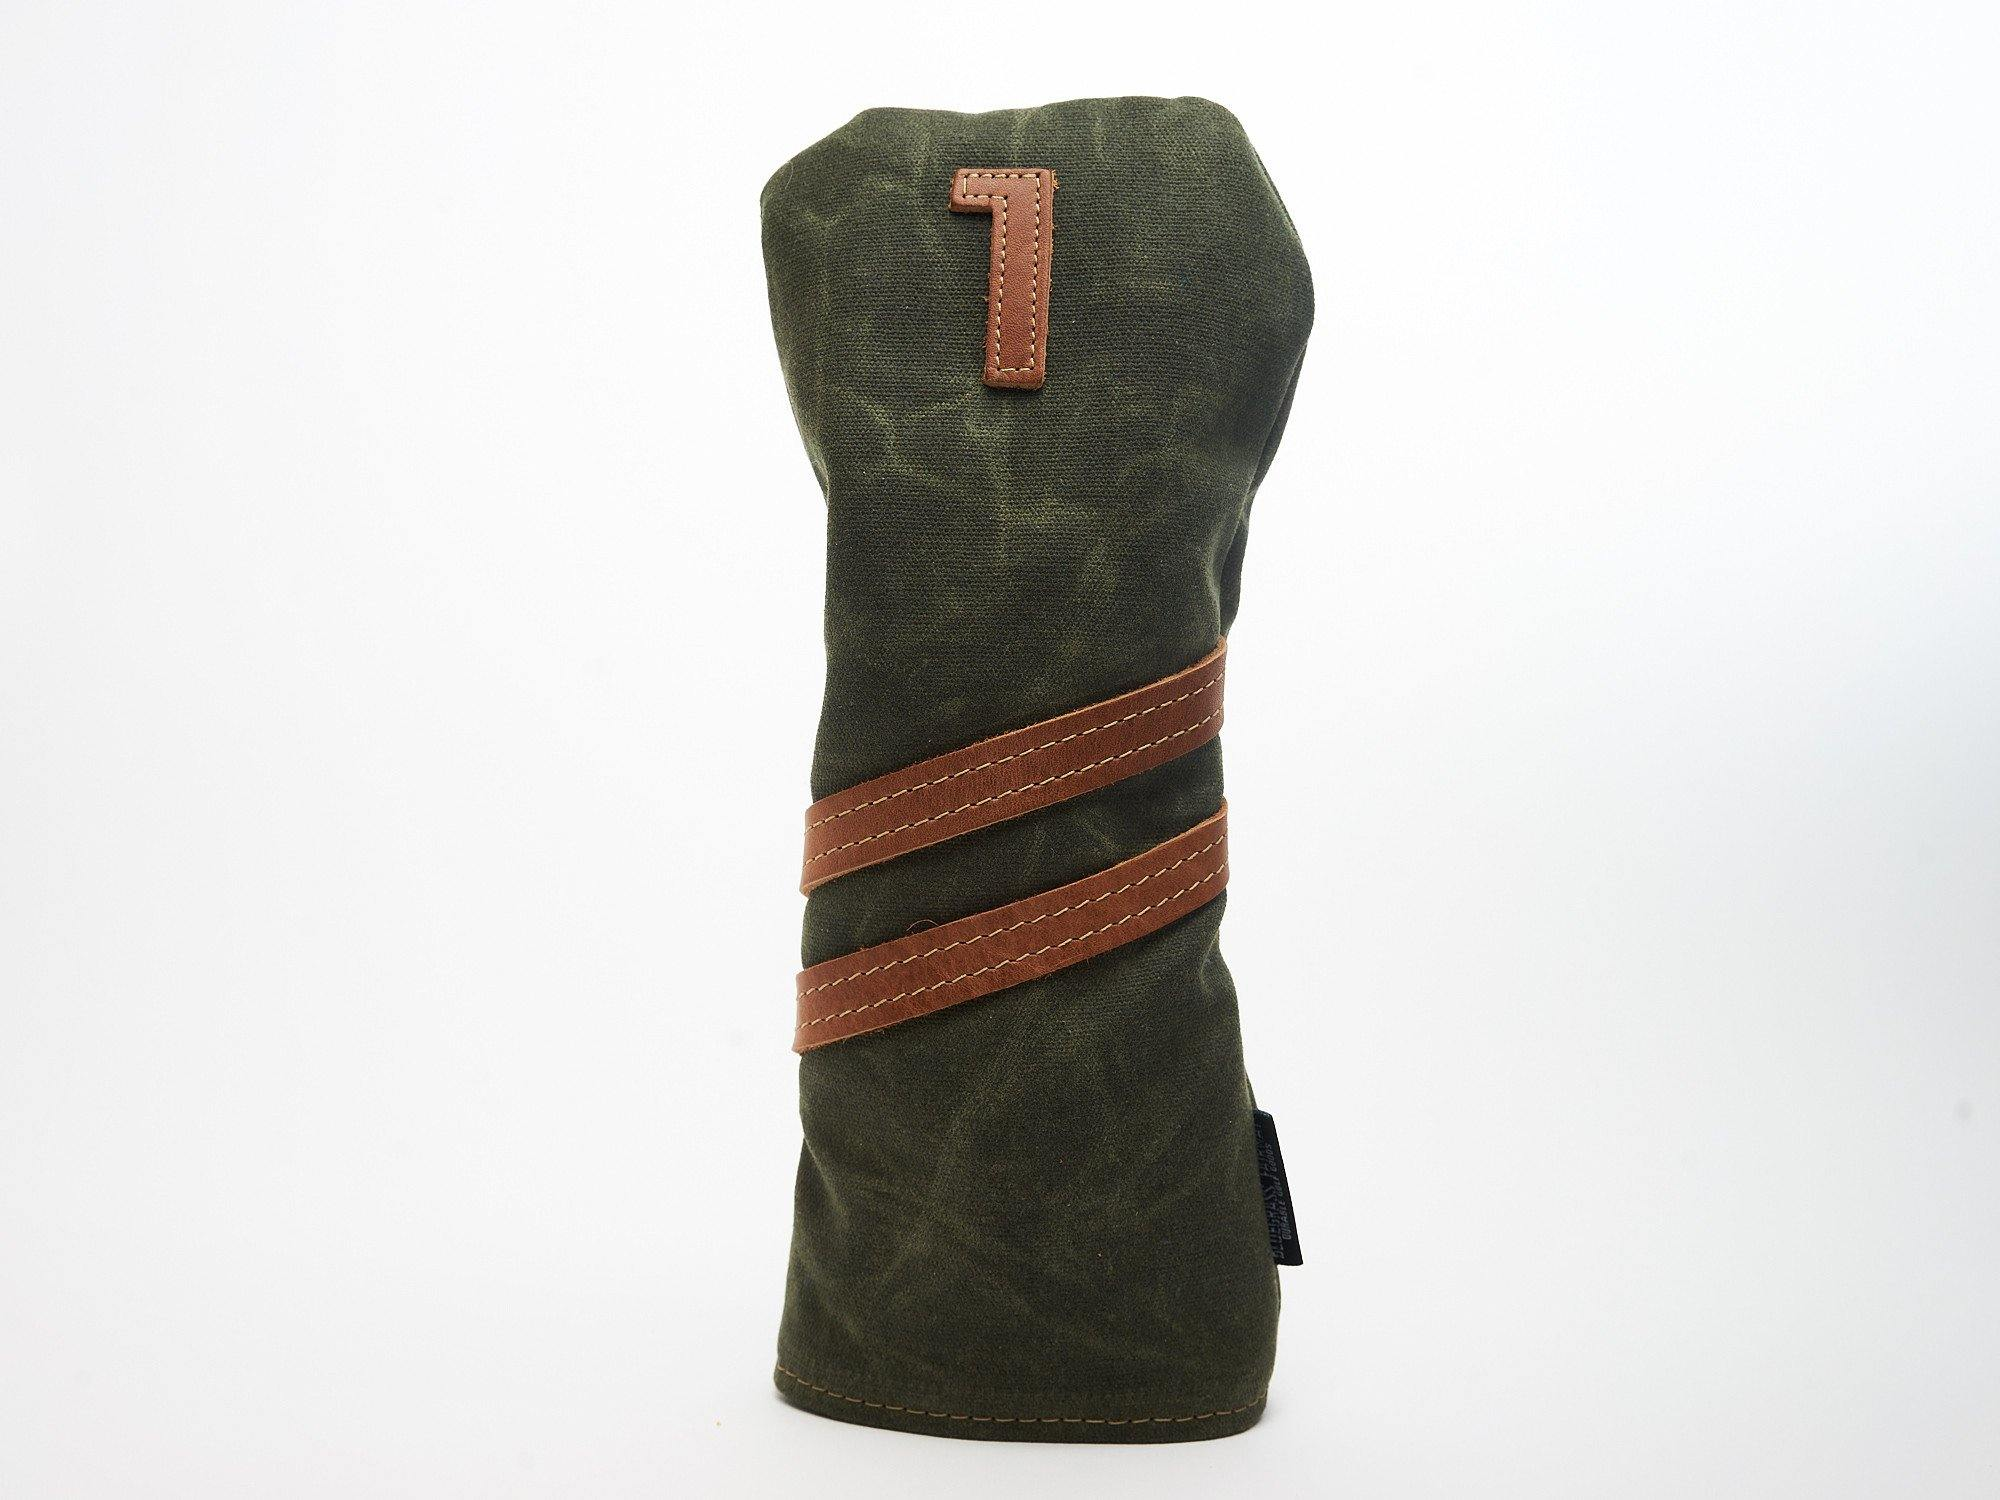 Invitational Edition Waxed Canvas golf Headcover in Green Driver